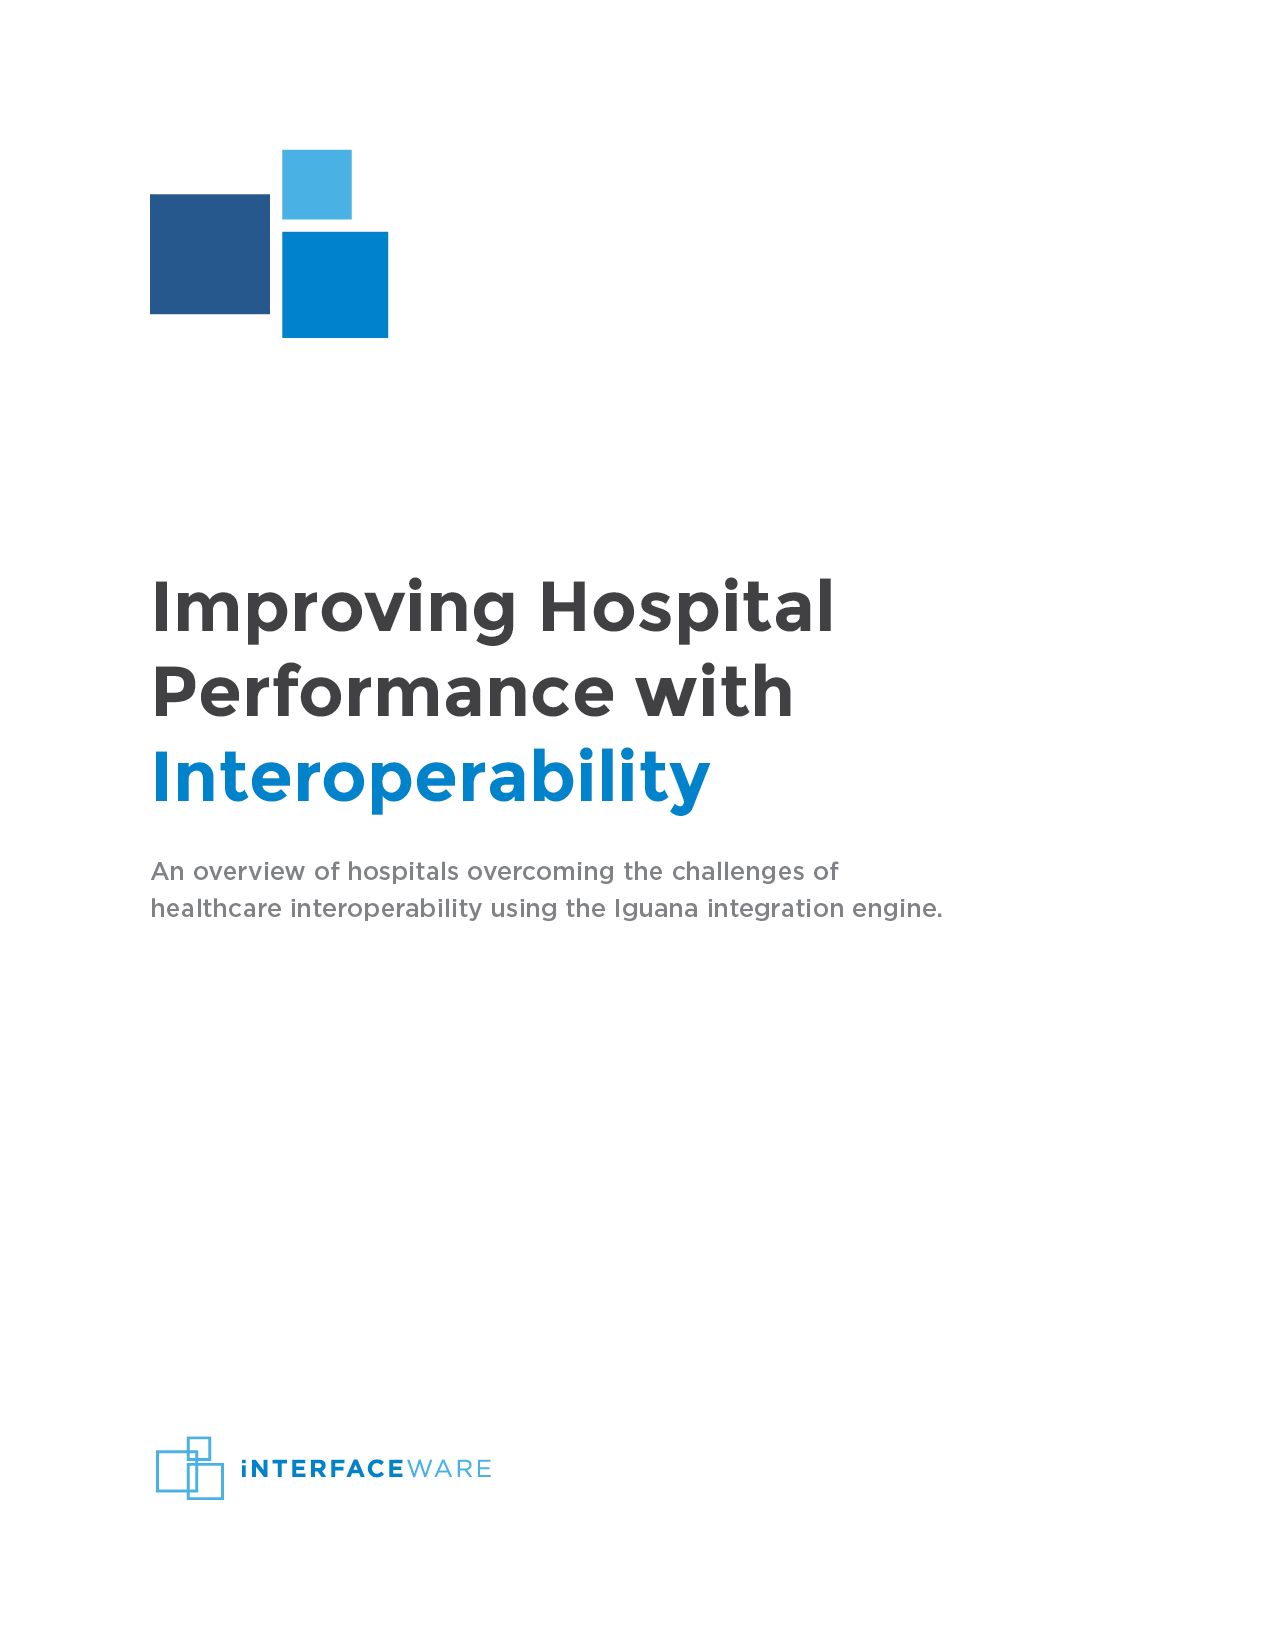 Improving Hospital Performance with Interoperability (TeresaEdit)